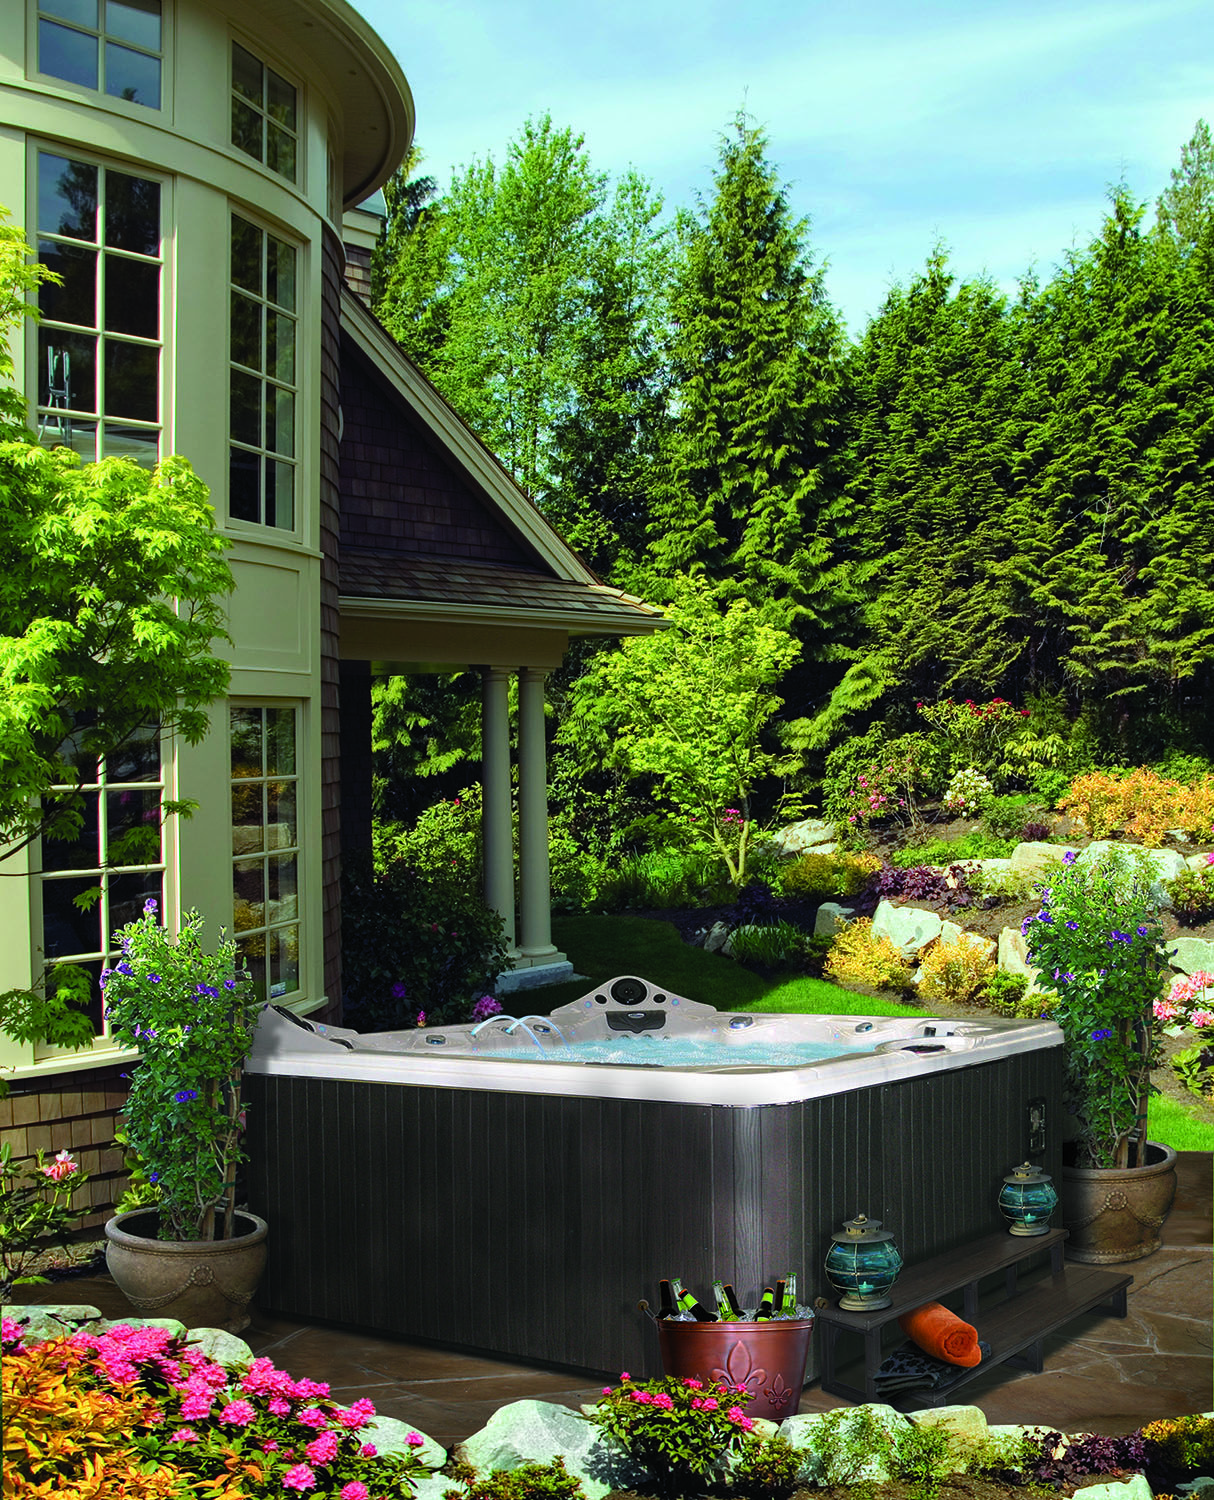 Hot Tub Landscaping For The Beginner On A Budget Hot Tub Landscaping Hot Tub Garden Hot Tub